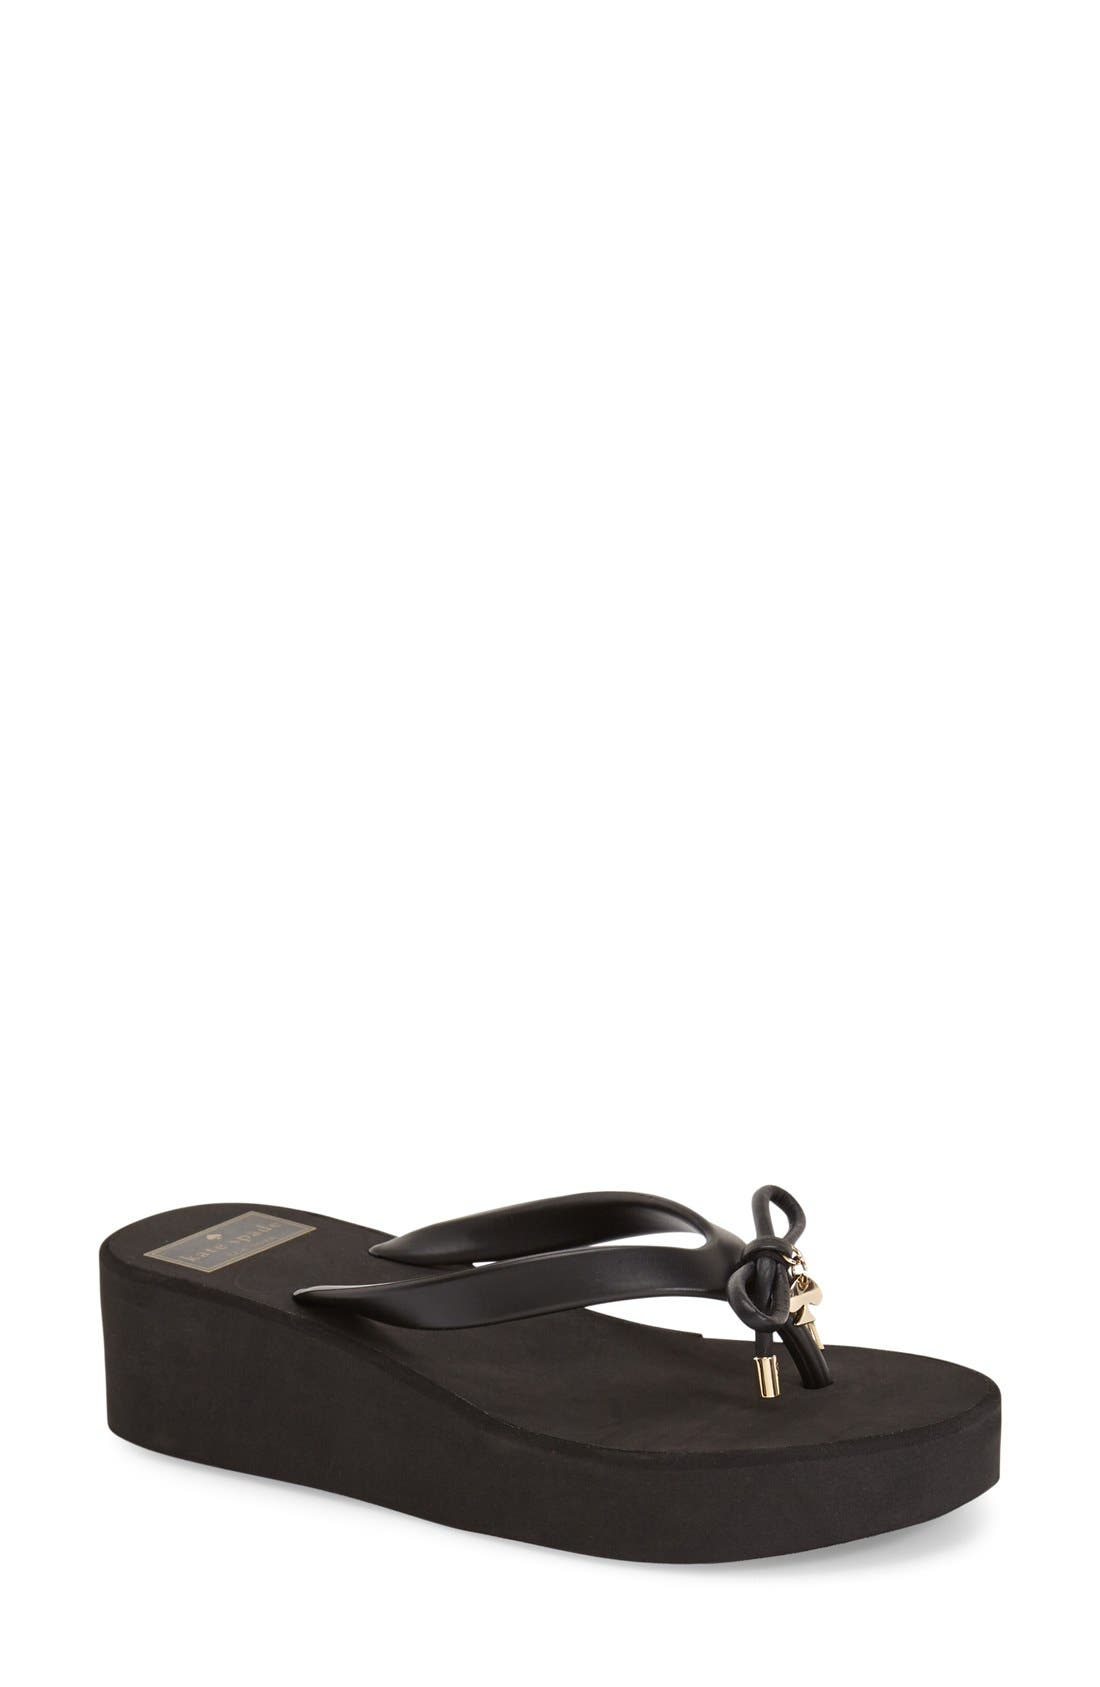 kate spade new york rhett platform flip flop (Women)